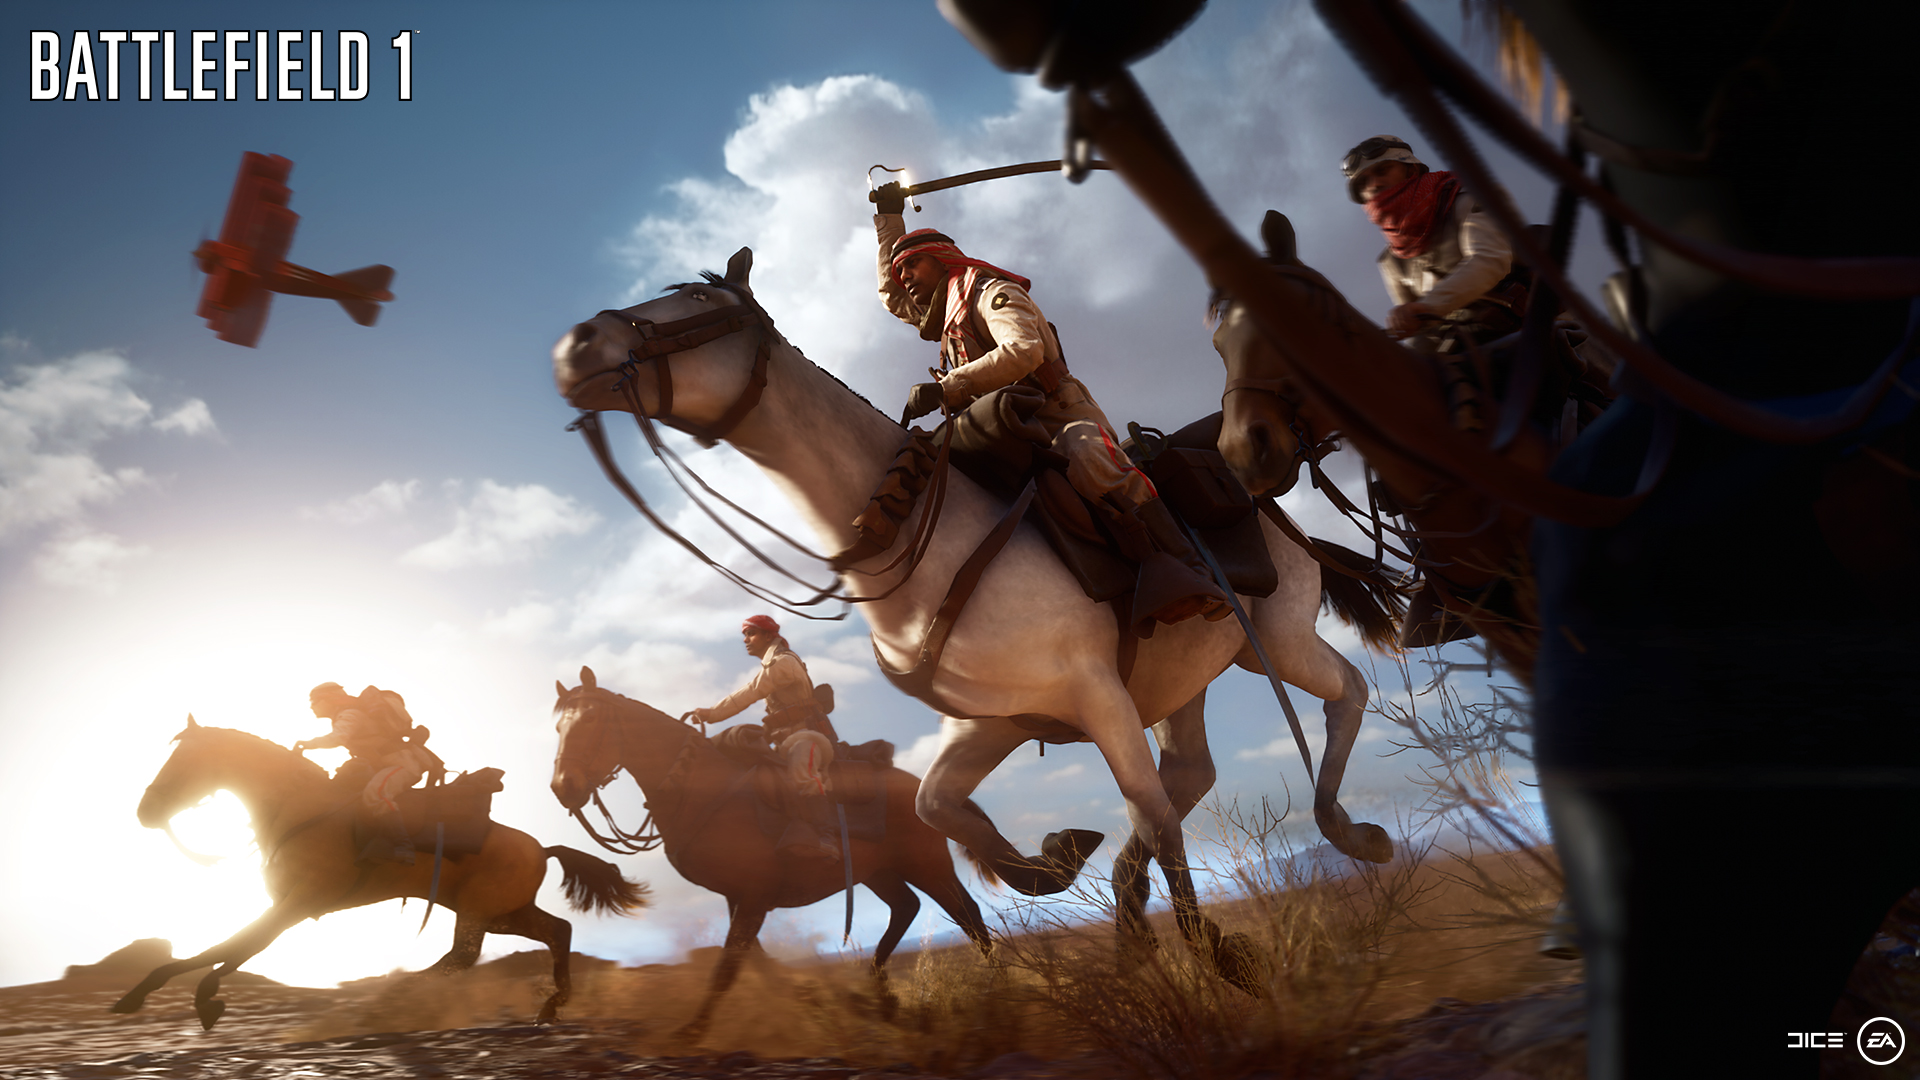 battlefield 1 rating announced with details about the game